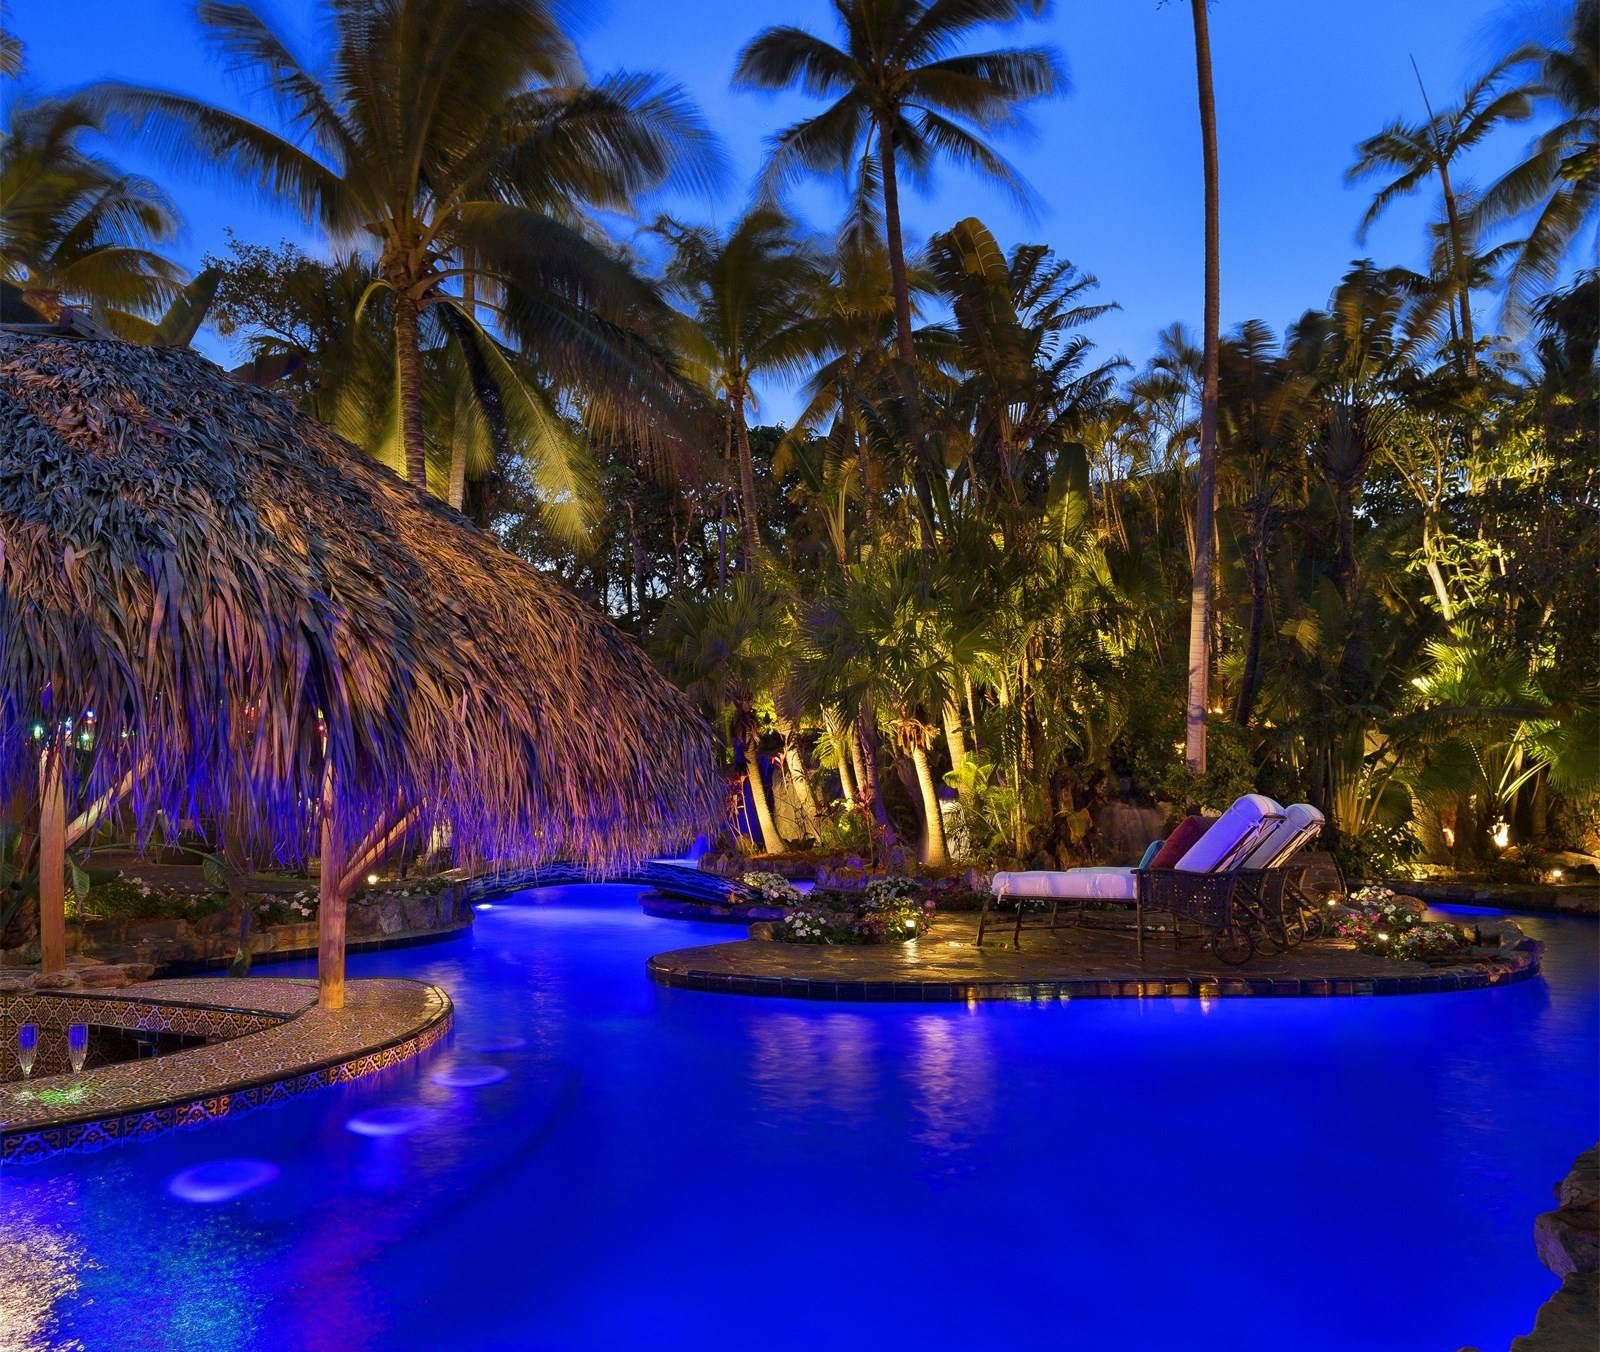 A swim-up bar, diving platforms, and grottos provide create a resort-style haven at this glamorous 1920s hideaway on Fort Lauderdale's New River.